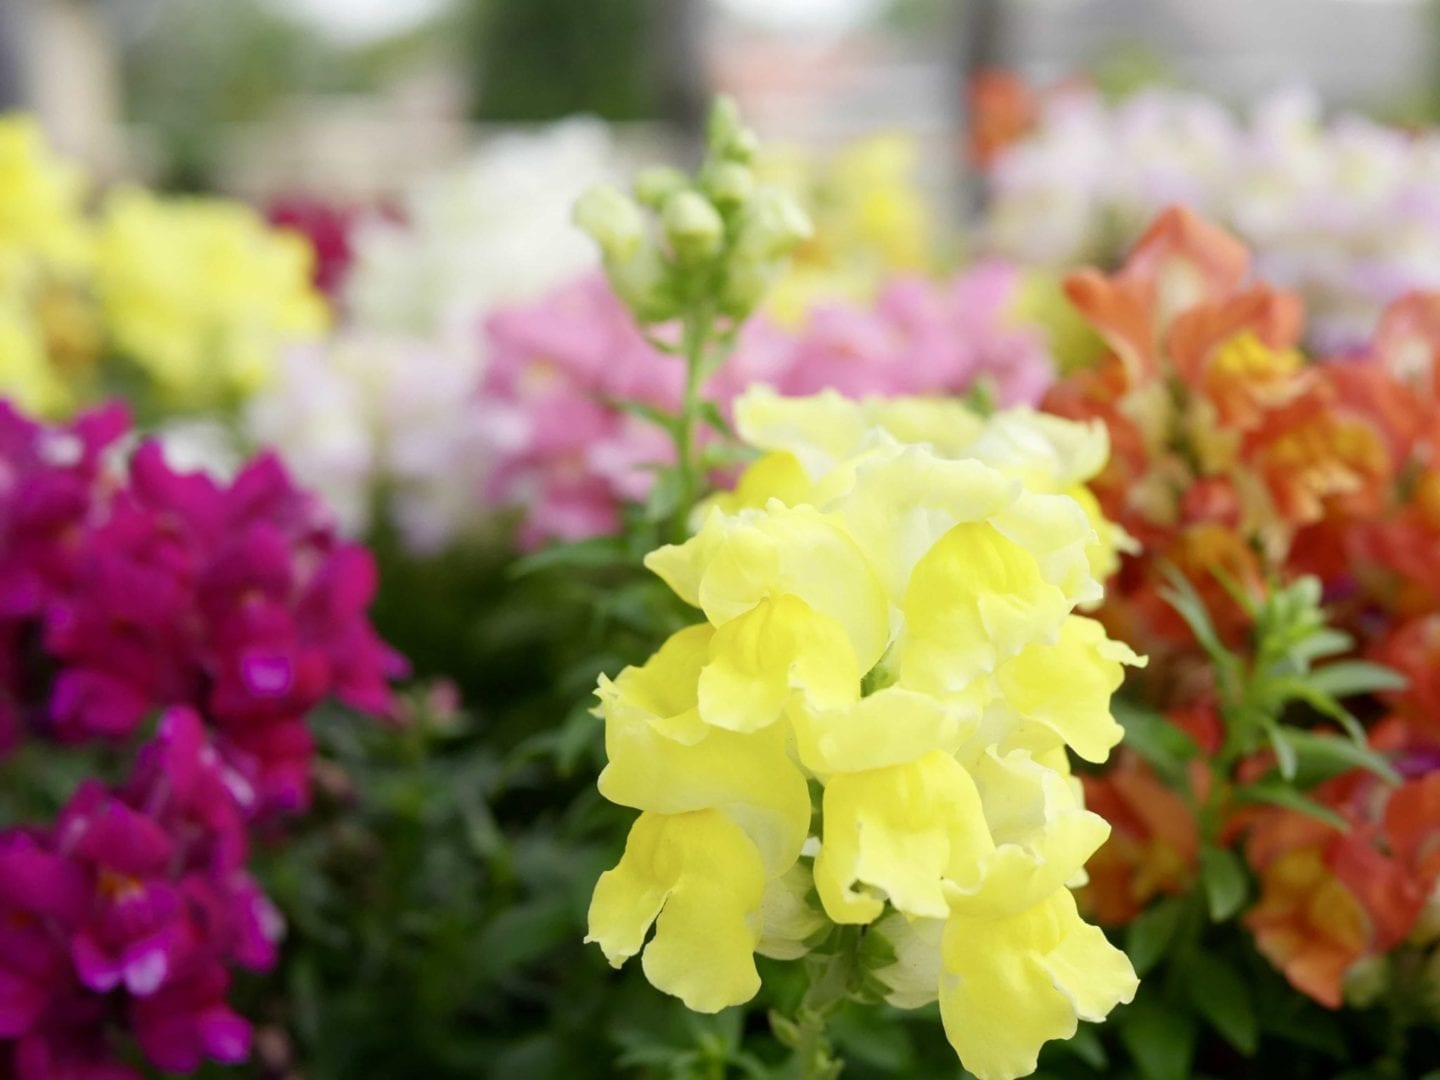 What colors do Snapdragons come in?